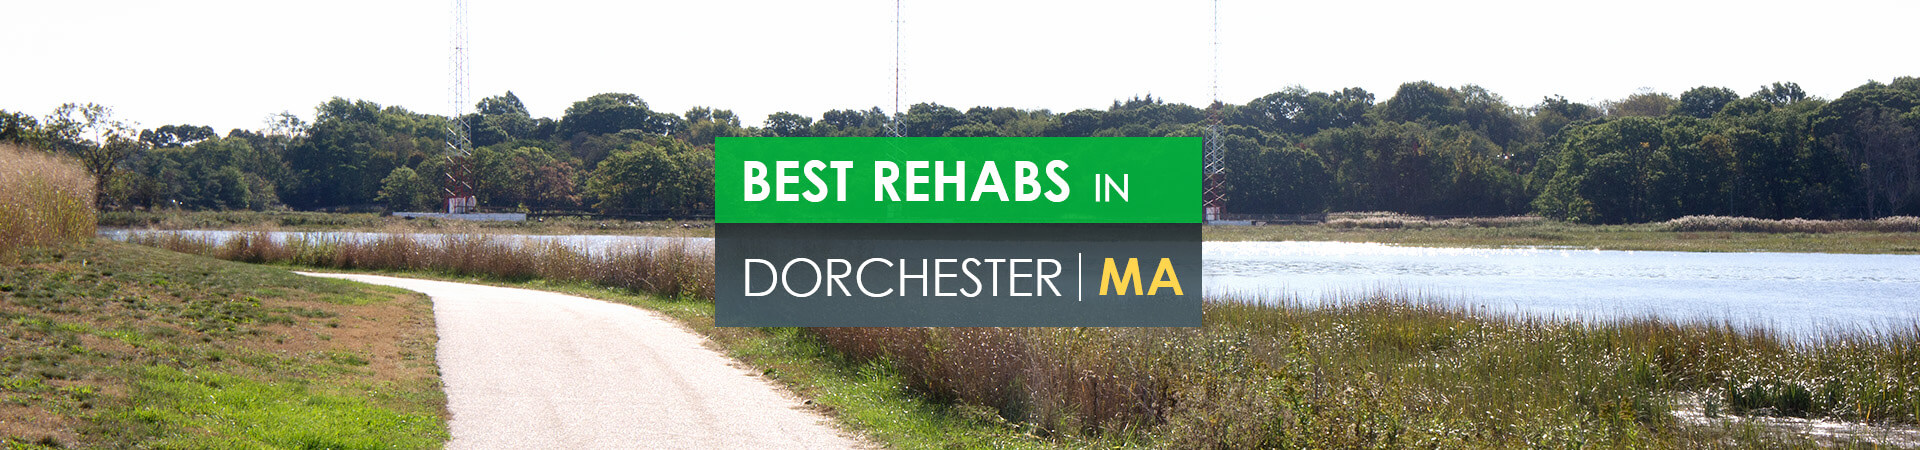 Best rehabs in Dorchester, MA